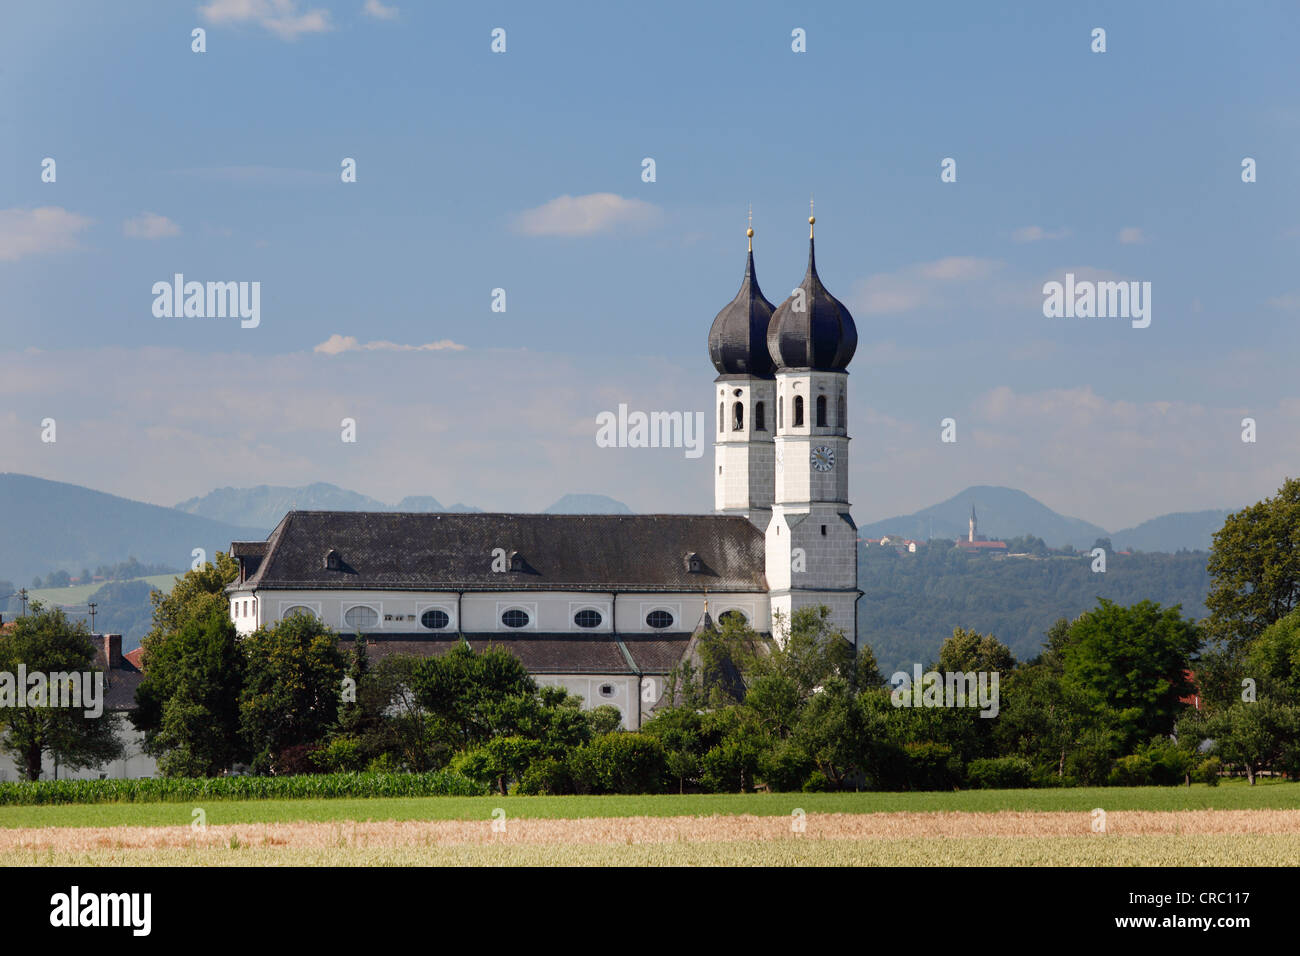 Holy Trinity pilgrimage church, church of Heilige Dreifaltigkeit, Weihenlinden, parish of Bruckmuehl, Upper Bavaria, - Stock Image